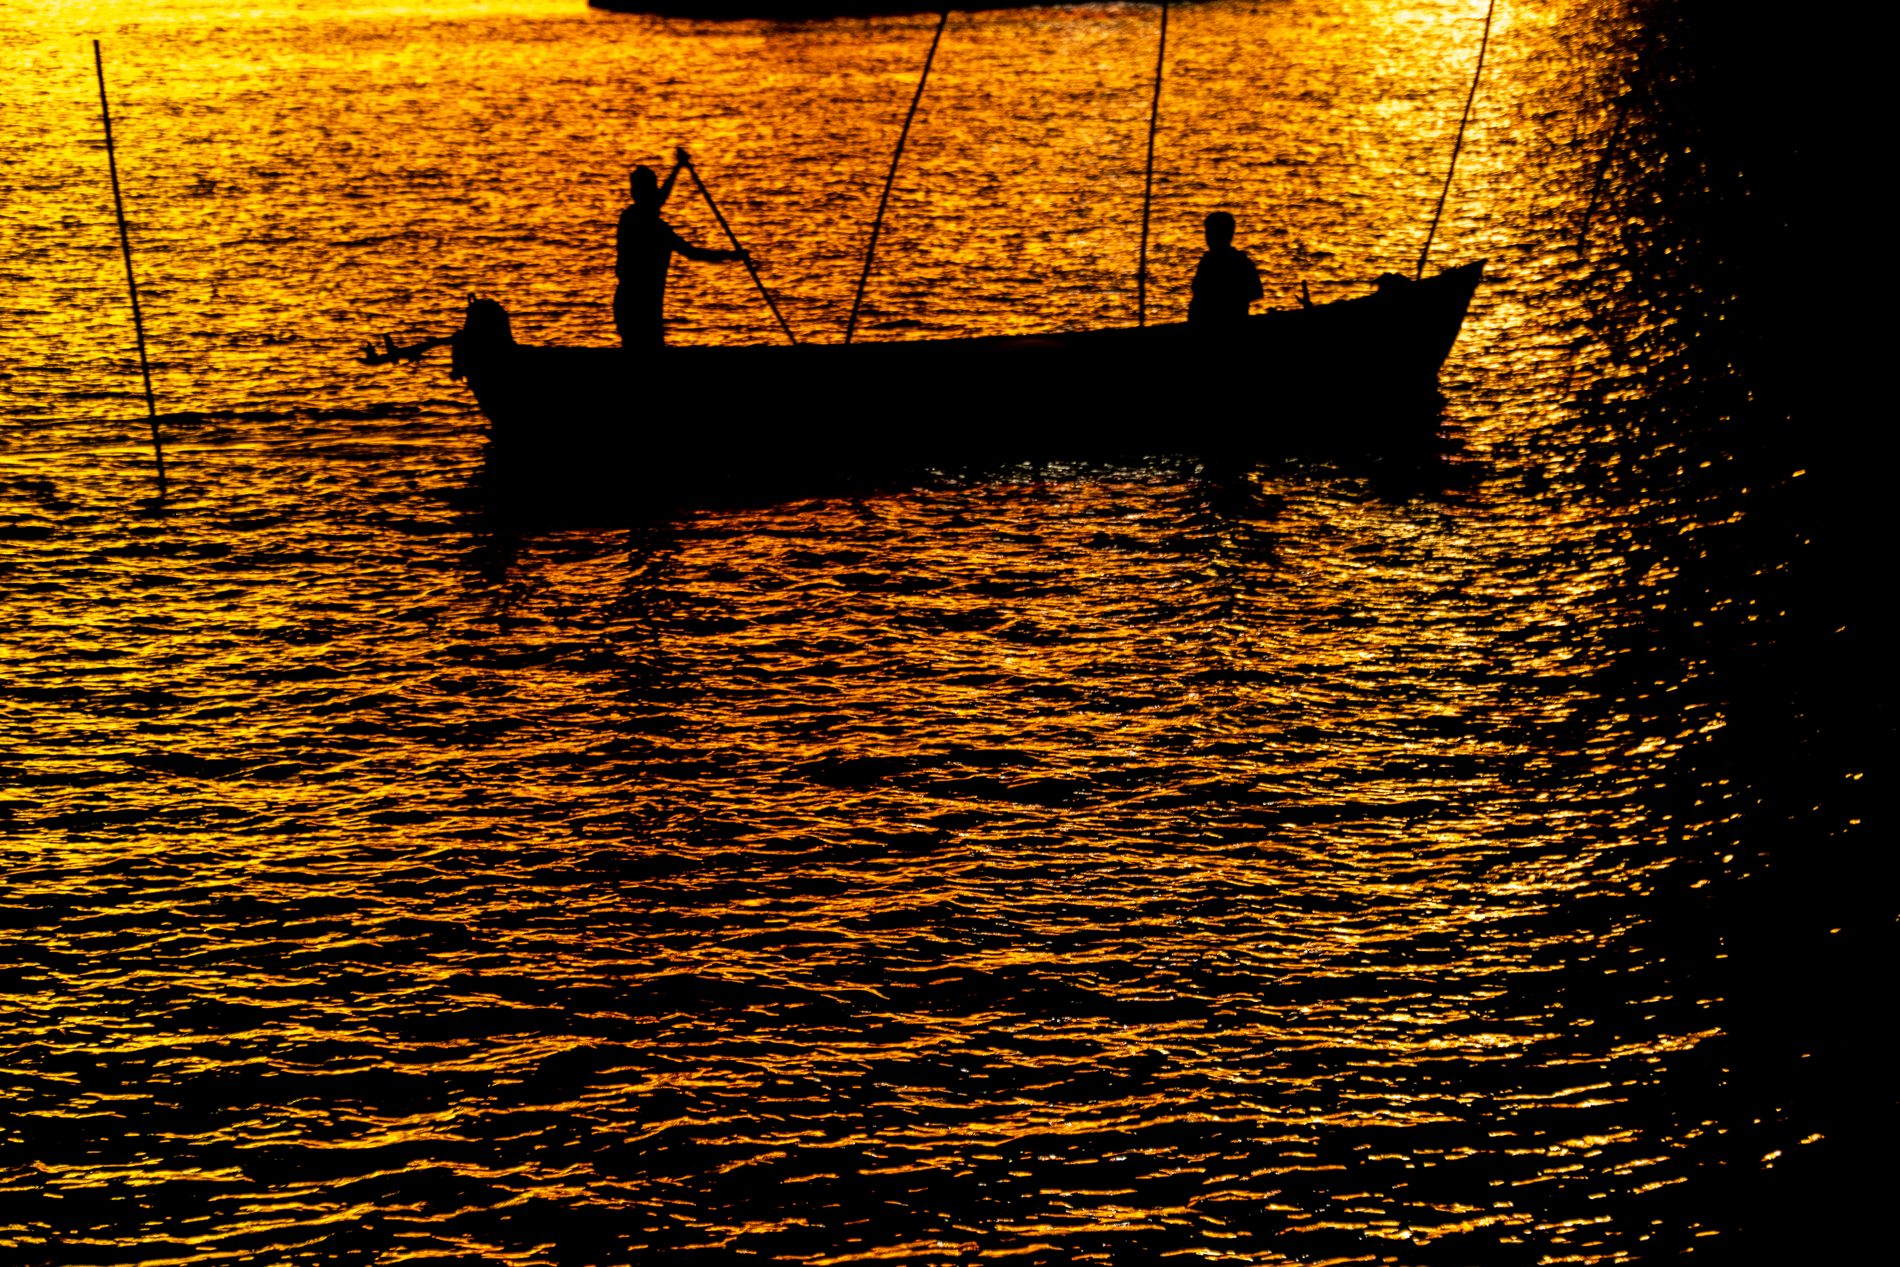 Two fishermen fishing their dinner, in the lights of the giant casino cruises in the background.  I liked the colors, the silhouette of the fishermen. I